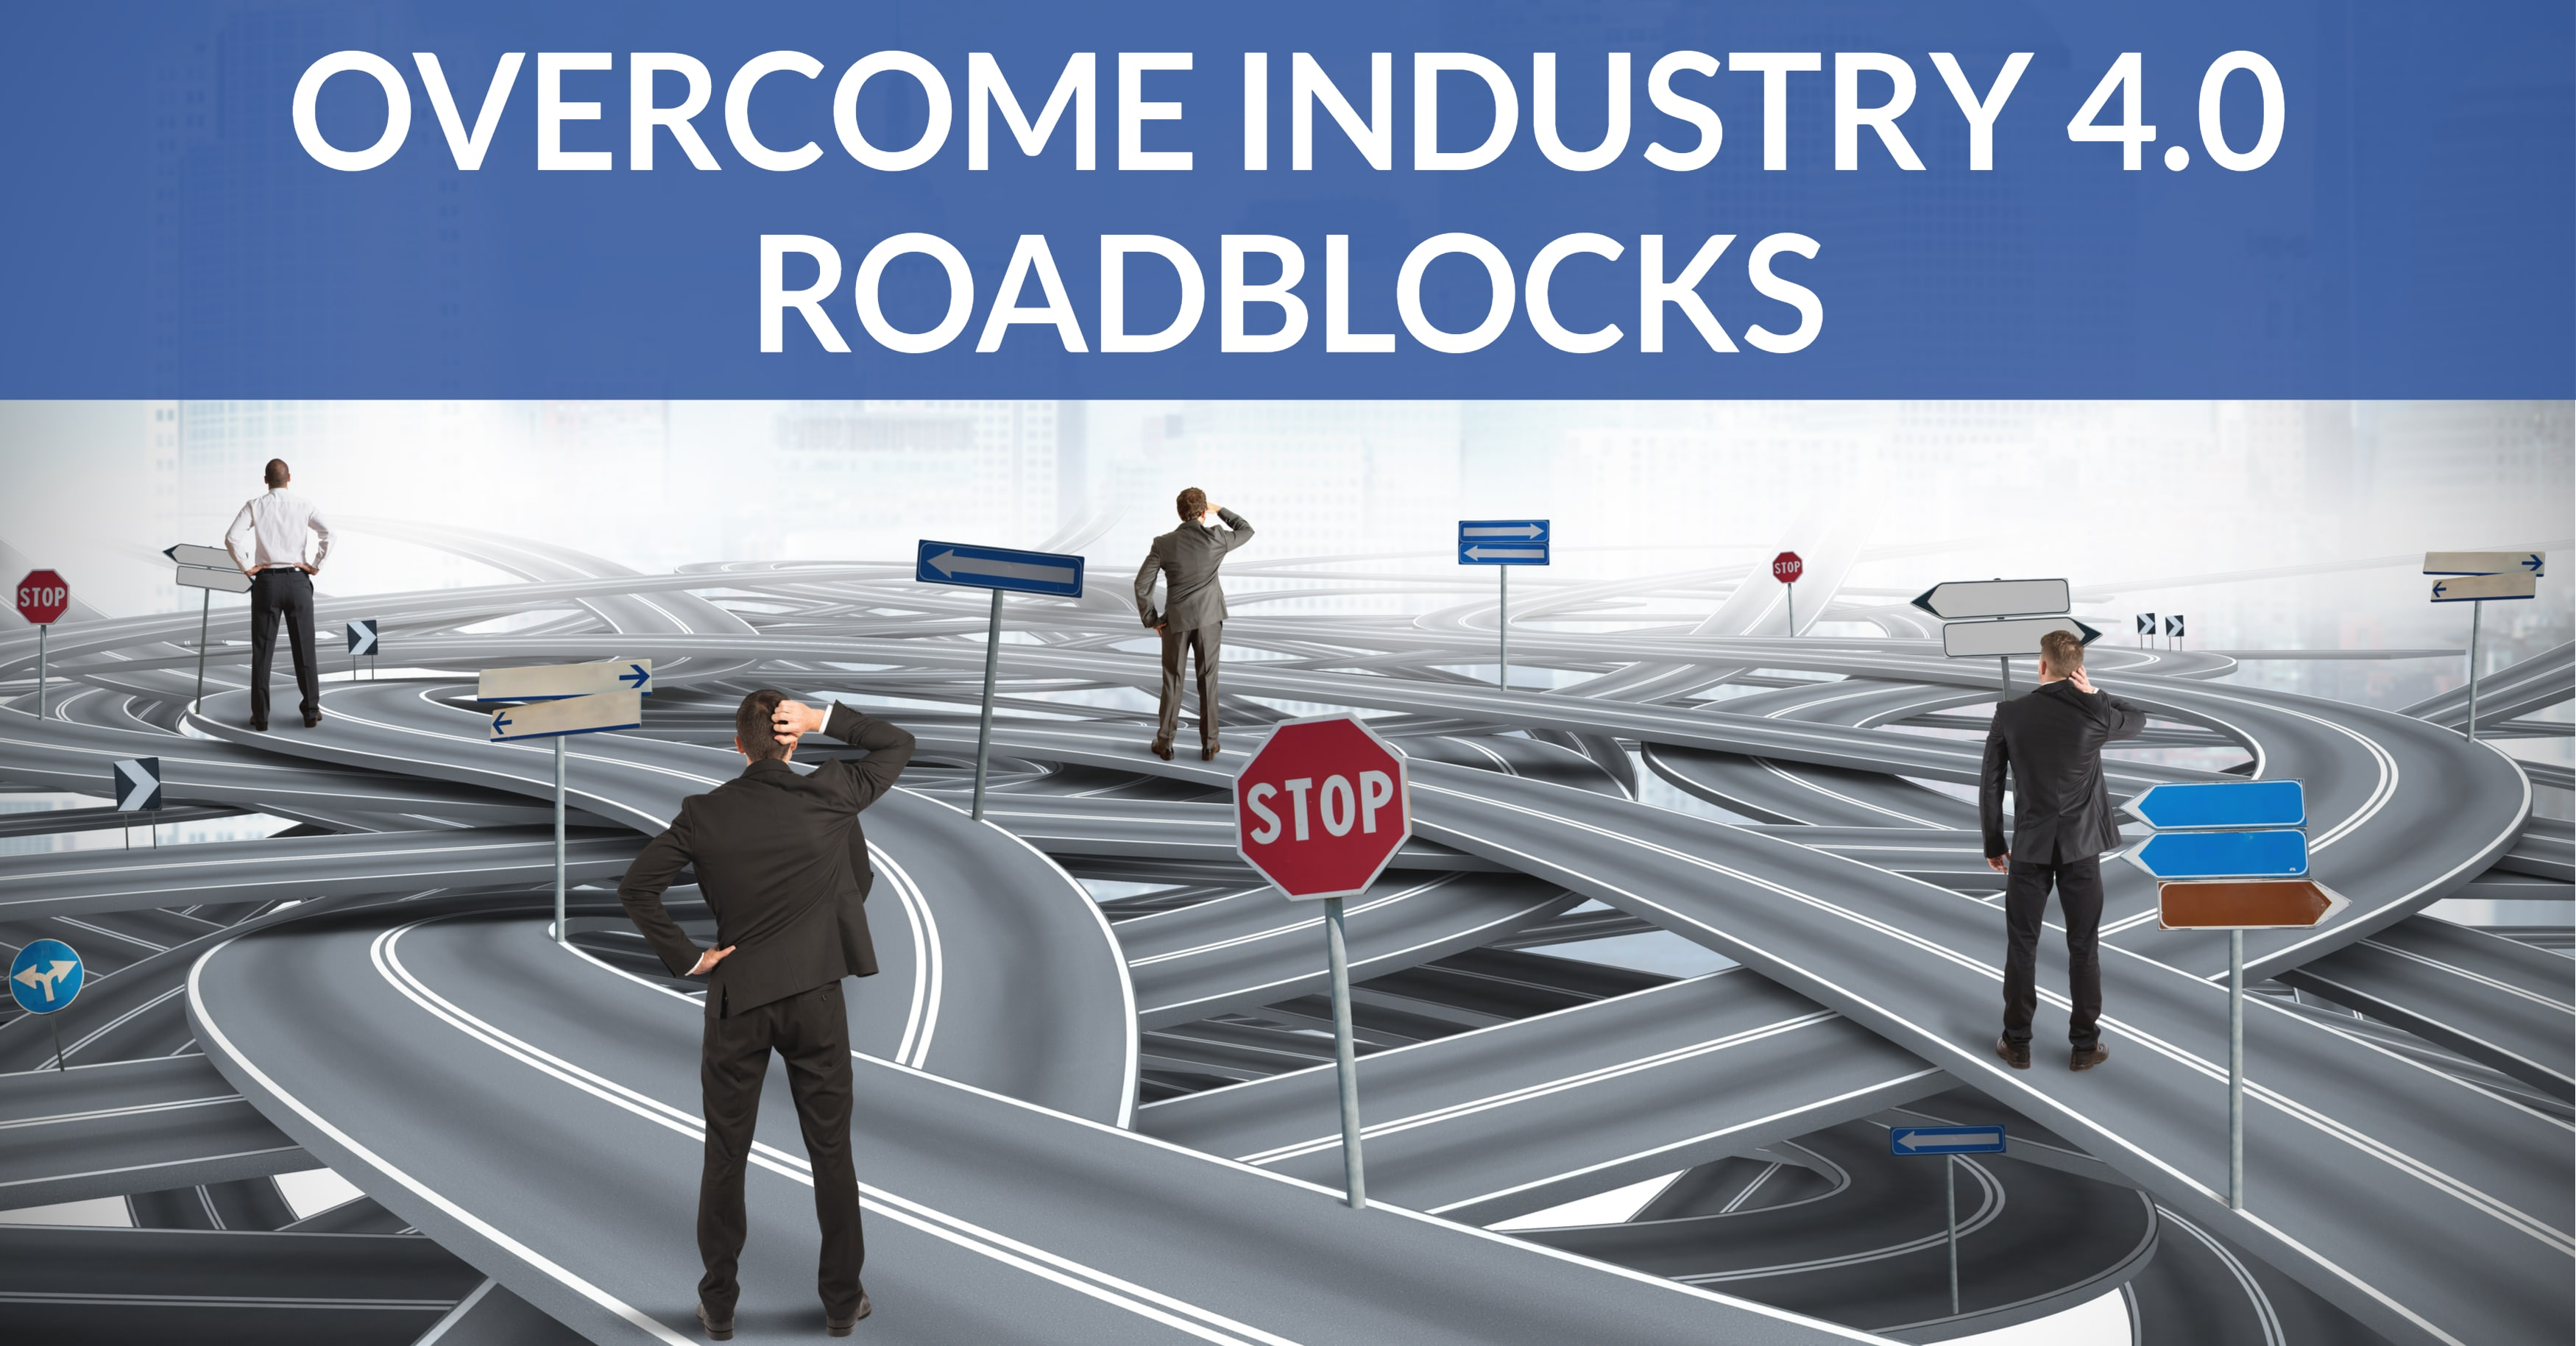 How to Overcome Industry 4.0 Roadblocks